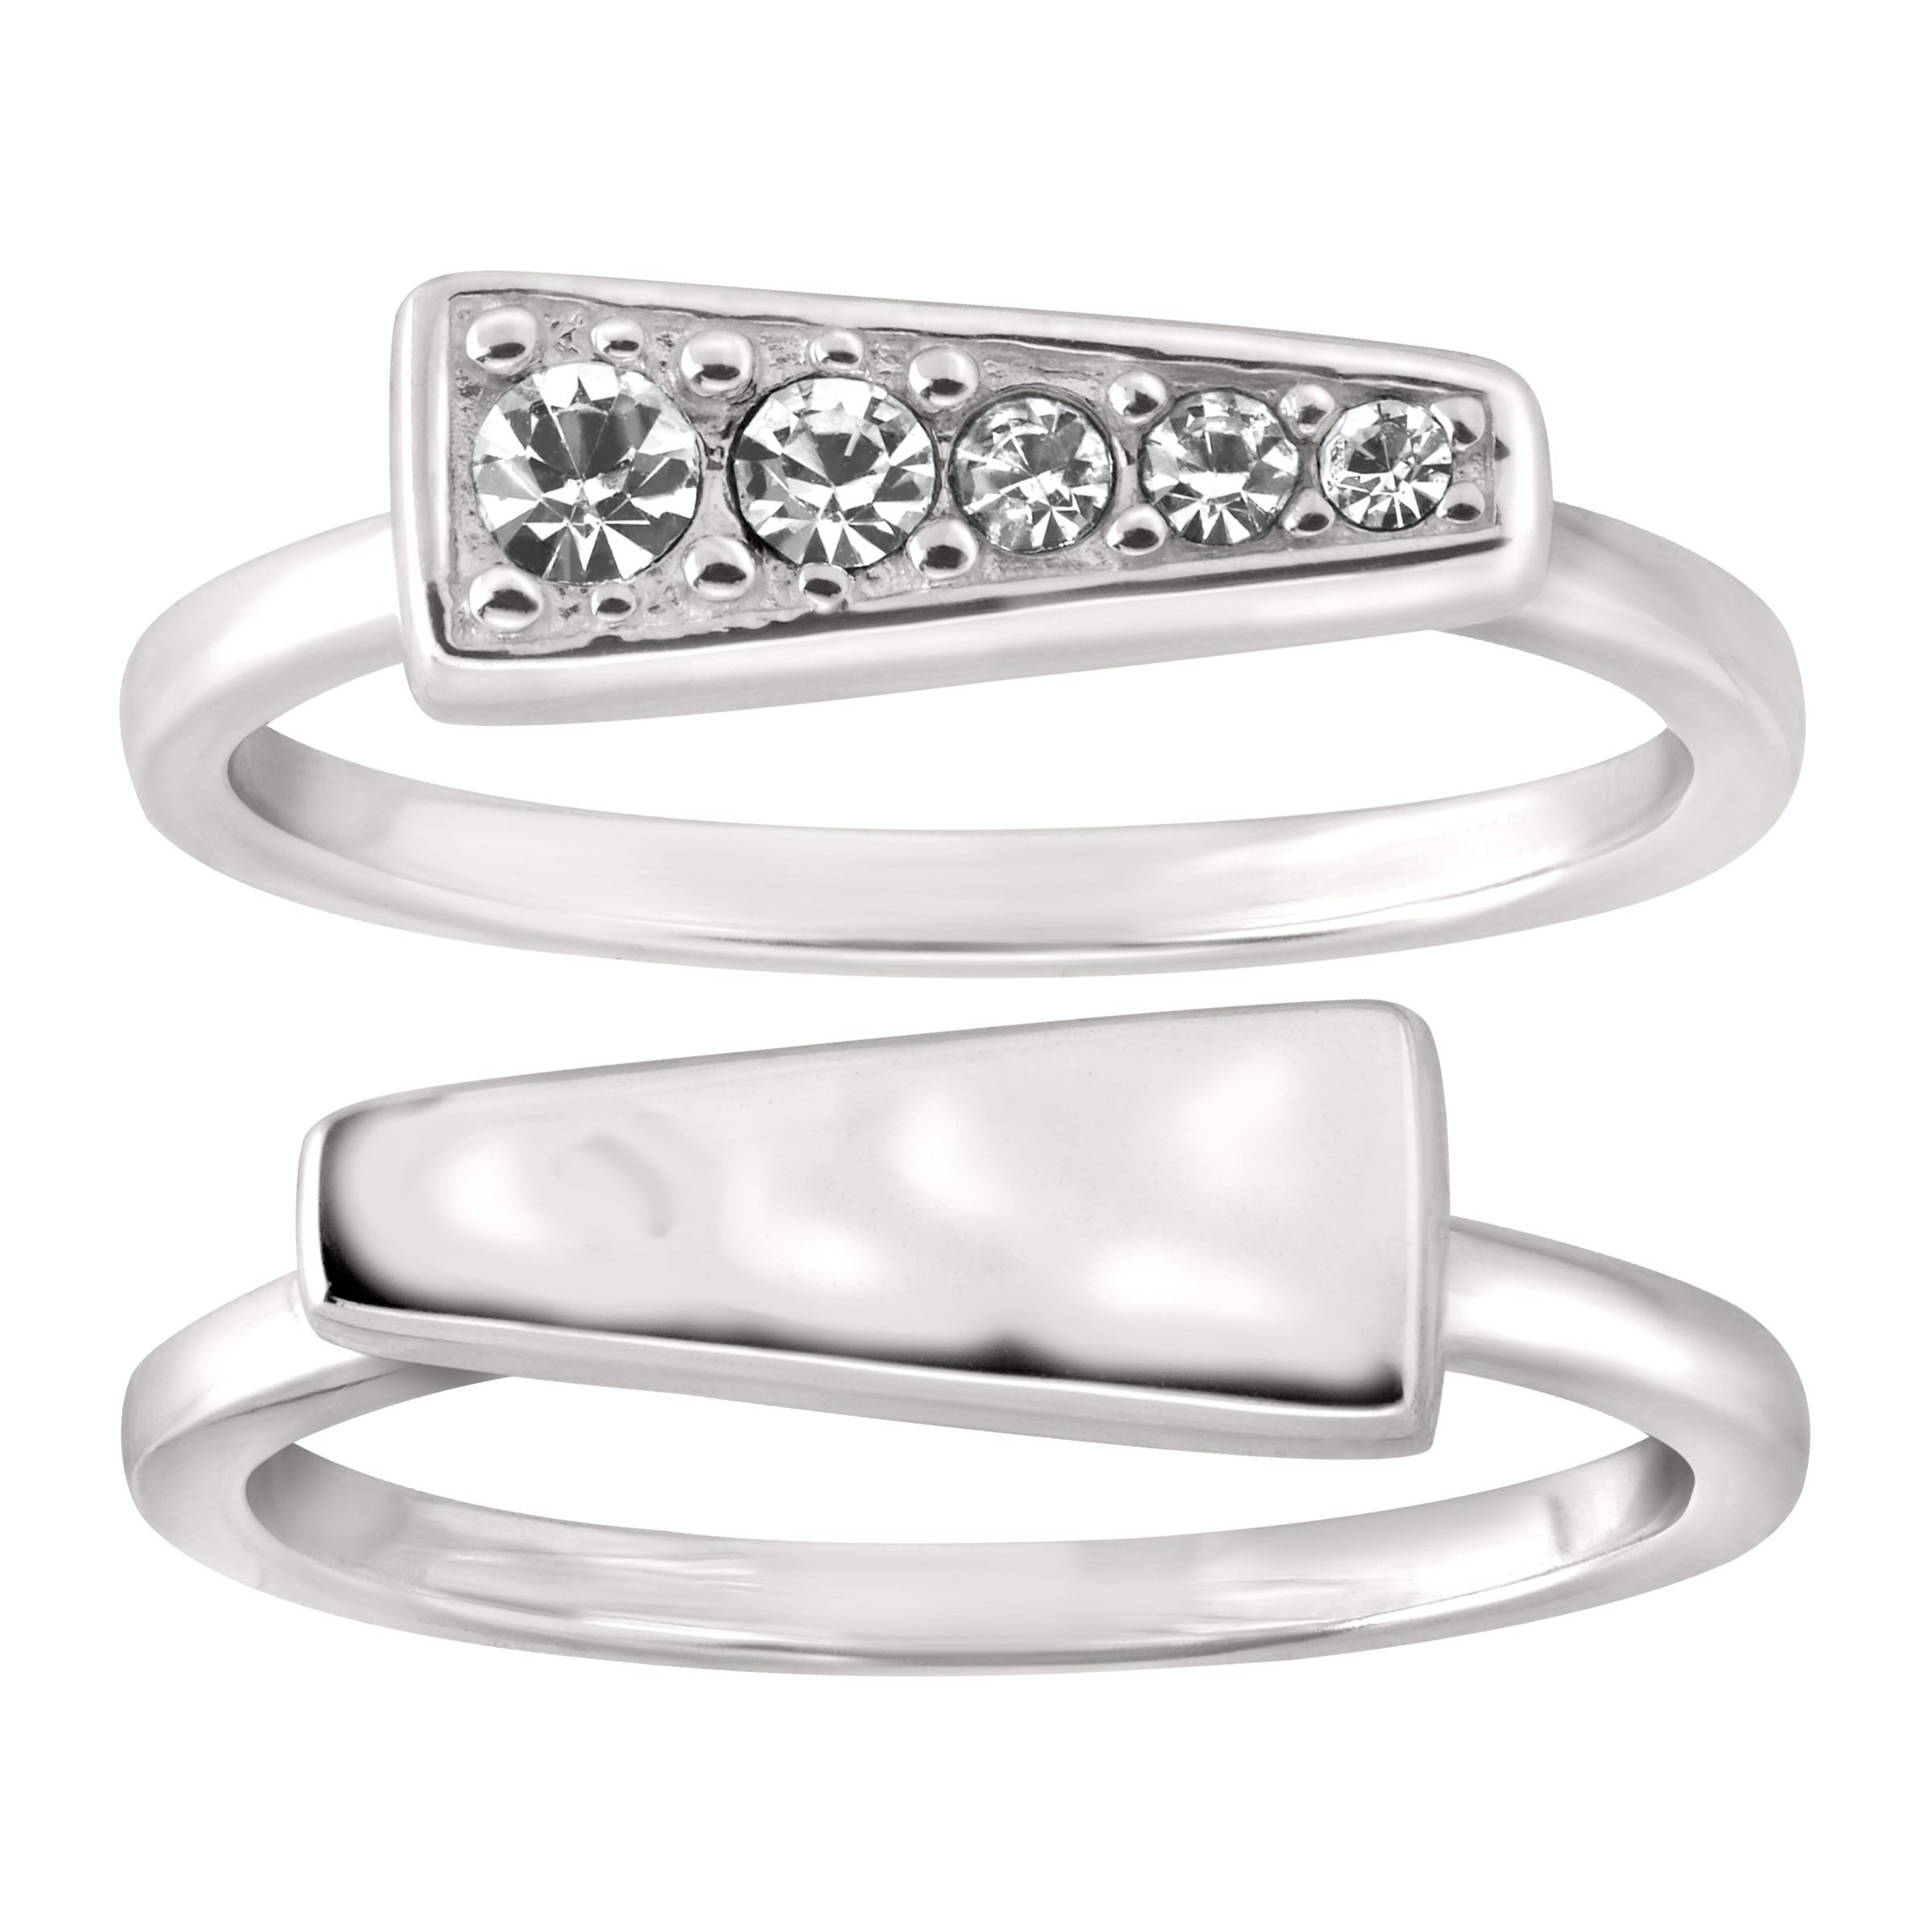 Silpada 'Spotlight' Stacking Rings with Swarovski Crystals in Sterling Silver